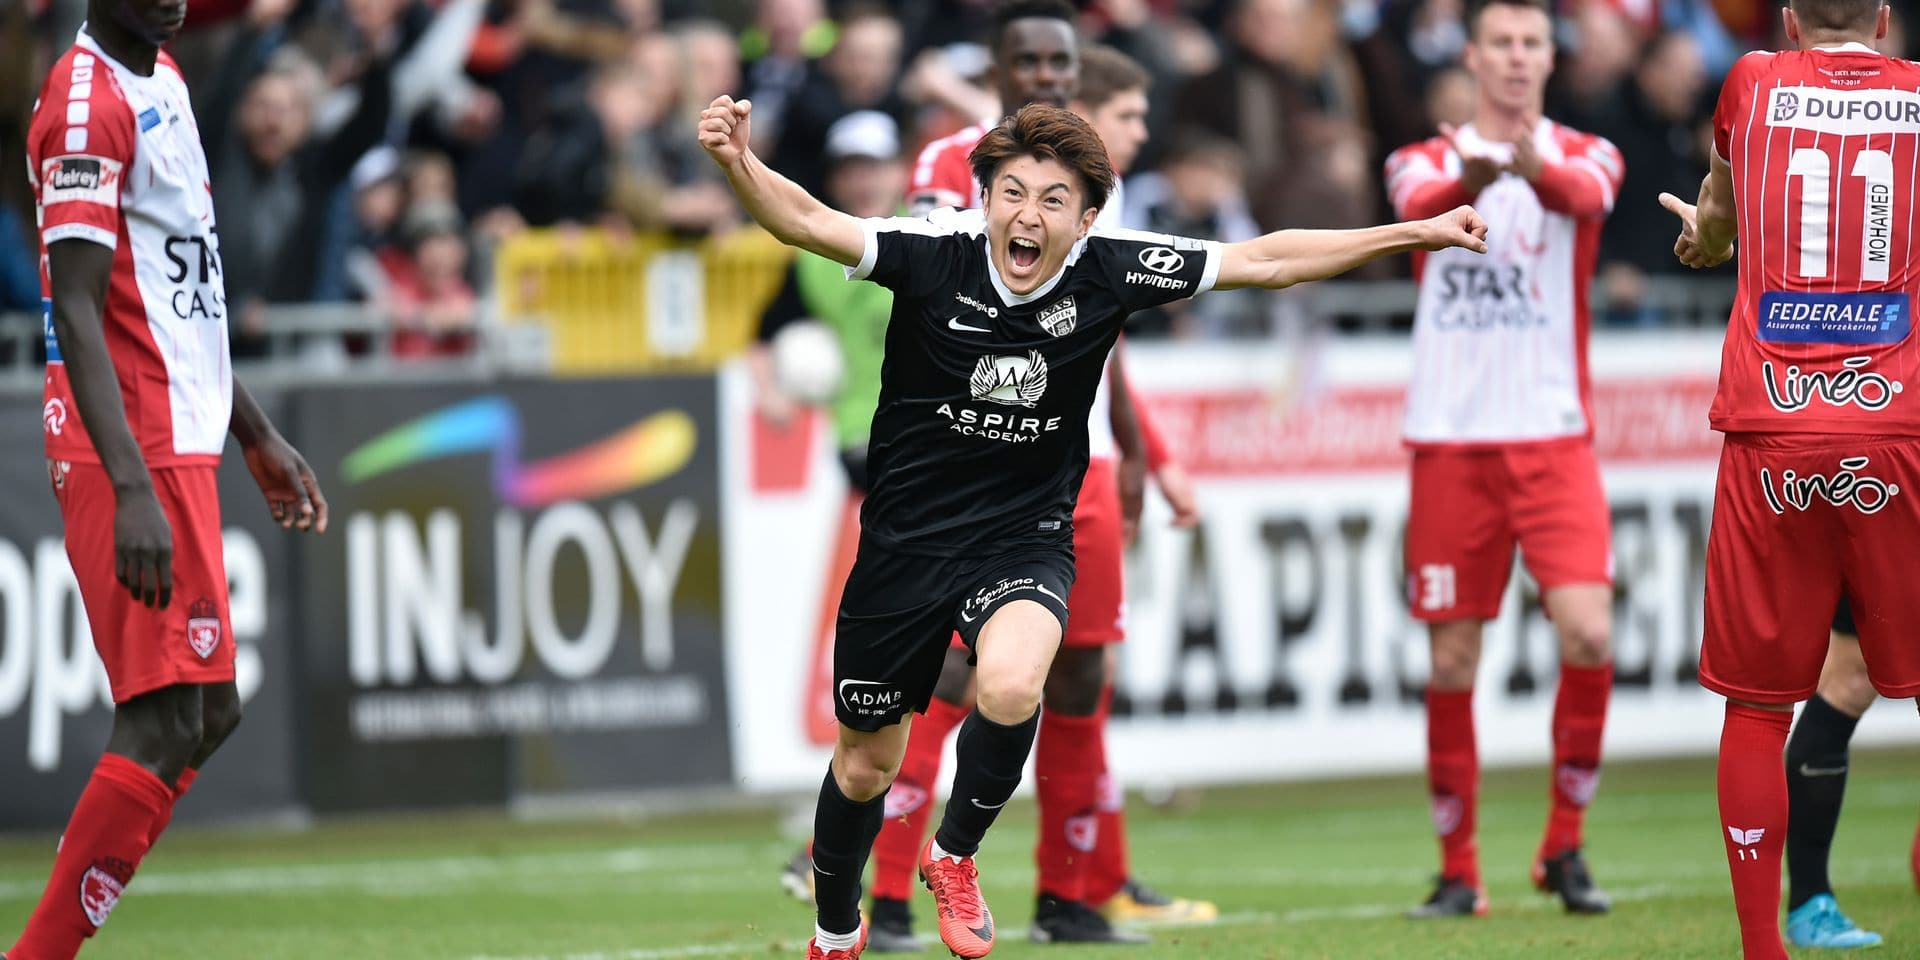 Eupen's Yuta Toyokawa celebrates after scoring during the Jupiler Pro League match between KAS Eupen and Royal Excel Mouscron, in Eupen, Sunday 11 March 2018, on day 30 of the Jupiler Pro League, the Belgian soccer championship season 2017-2018. BELGA PHOTO JOHN THYS